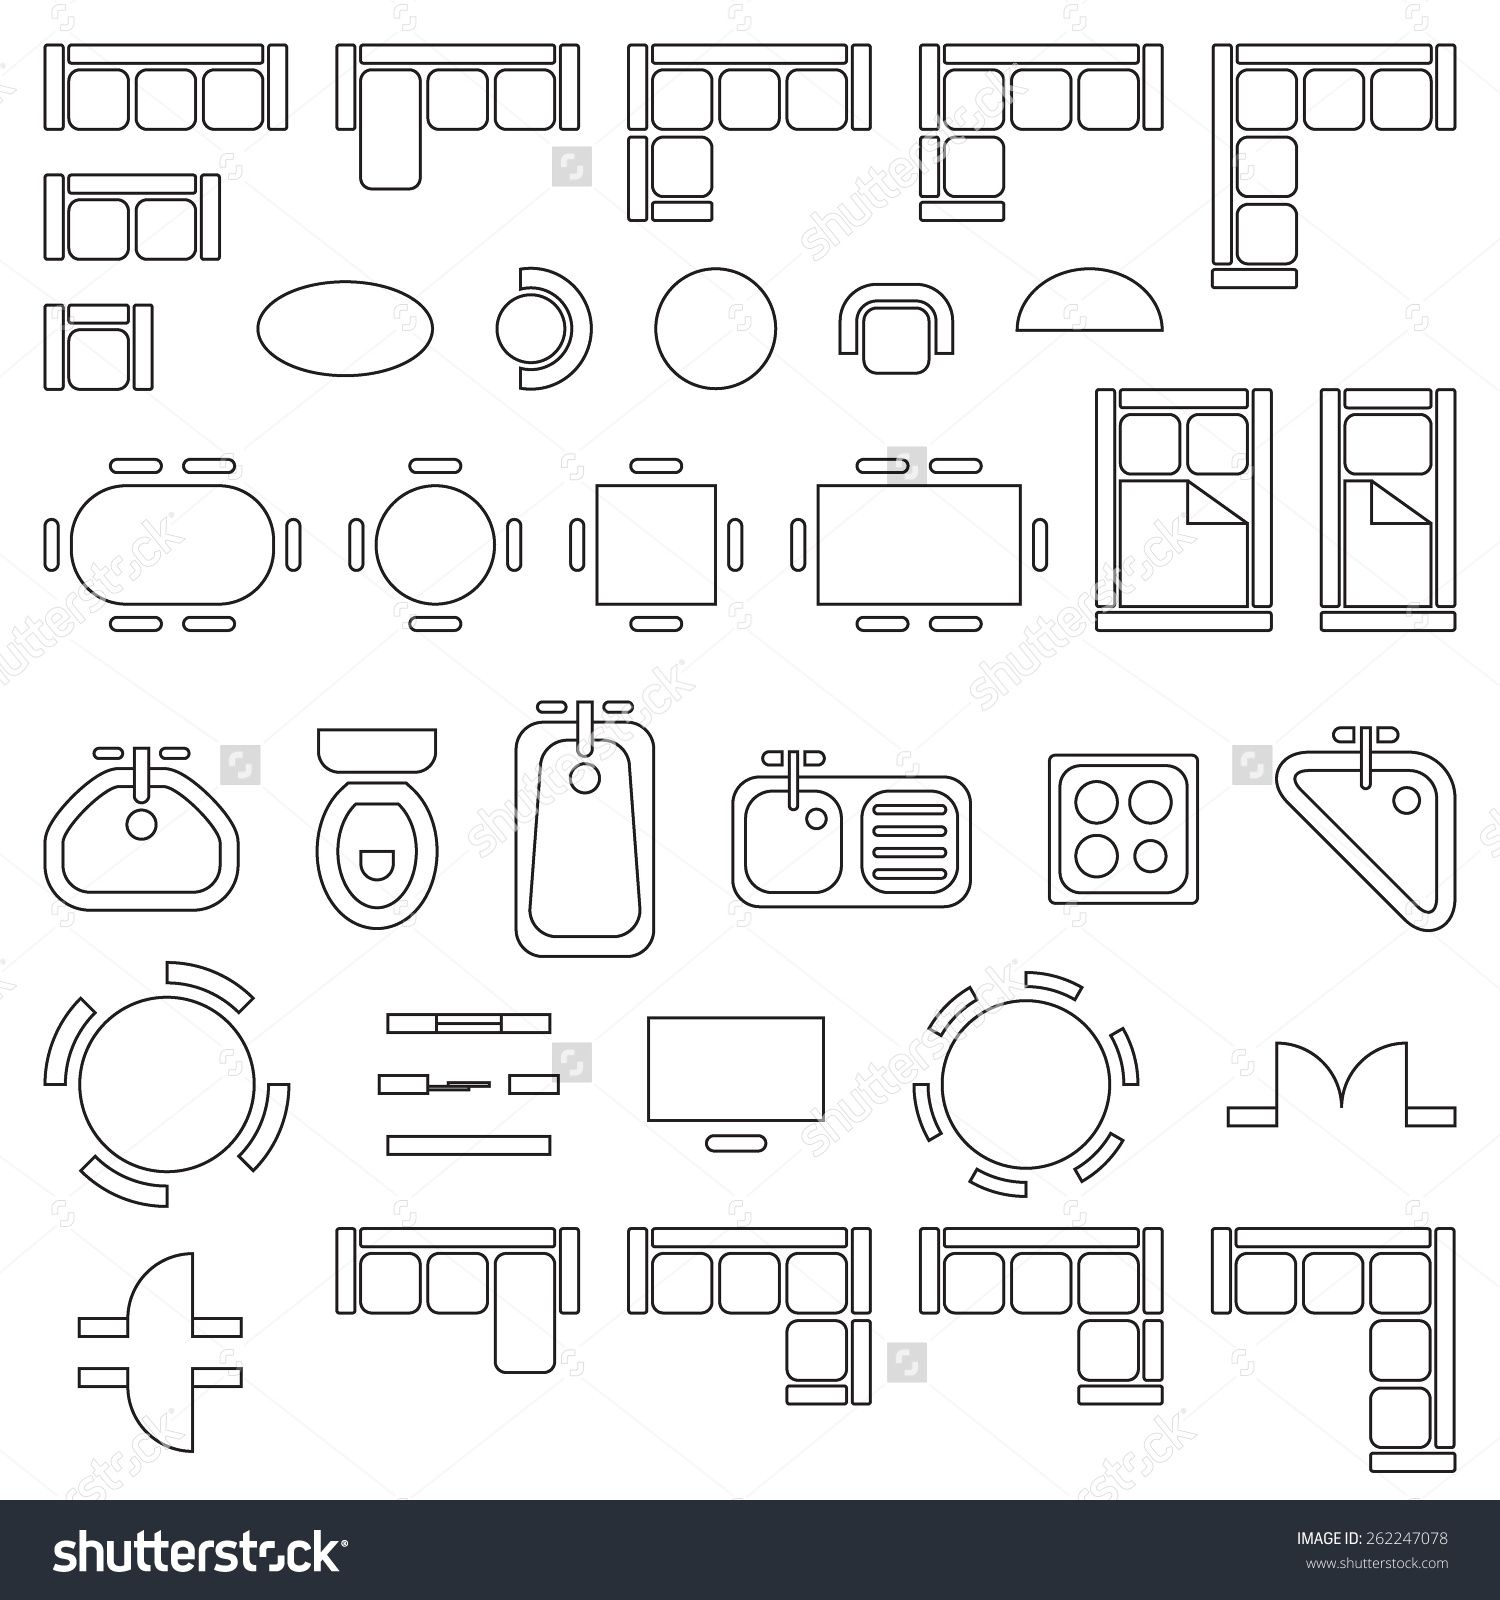 Black White Interior Design Furniture For Floor Plan ~ Standard furniture symbols used in architecture plans